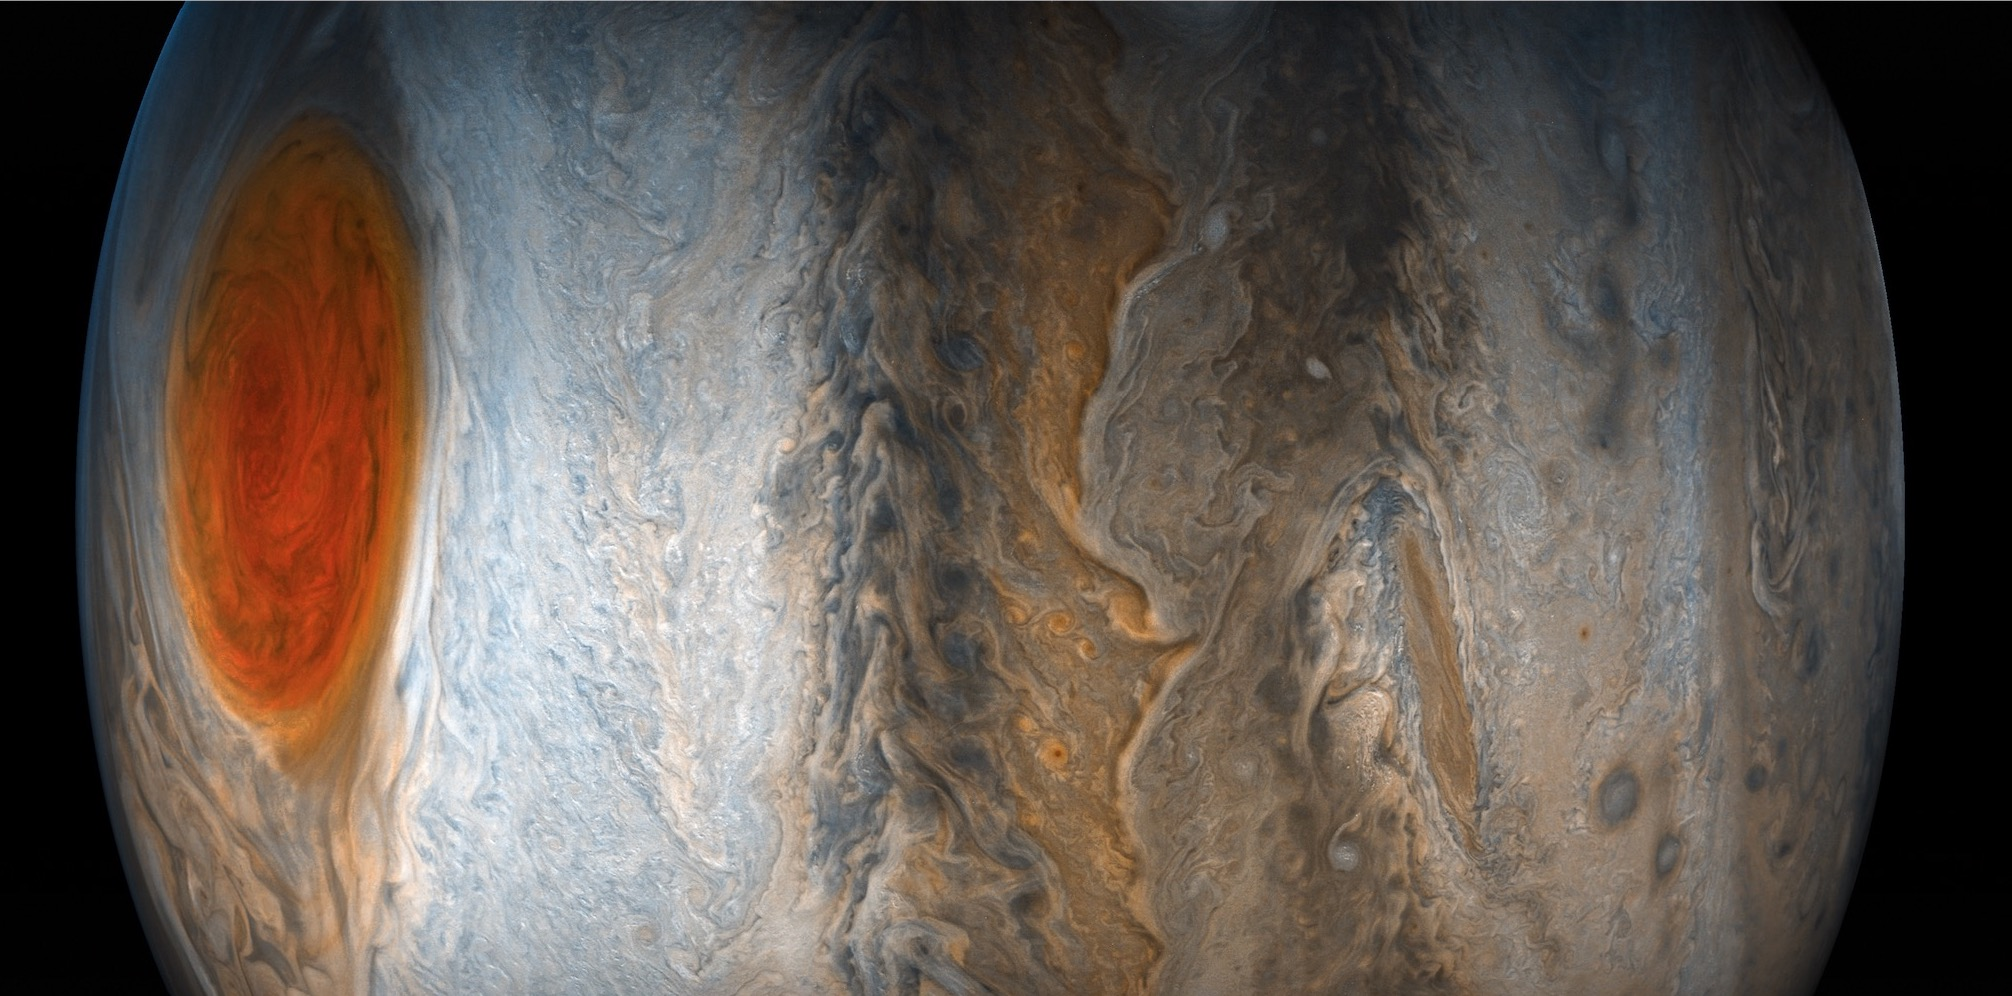 check out this amazing jupiter wallpaper picture from junocam